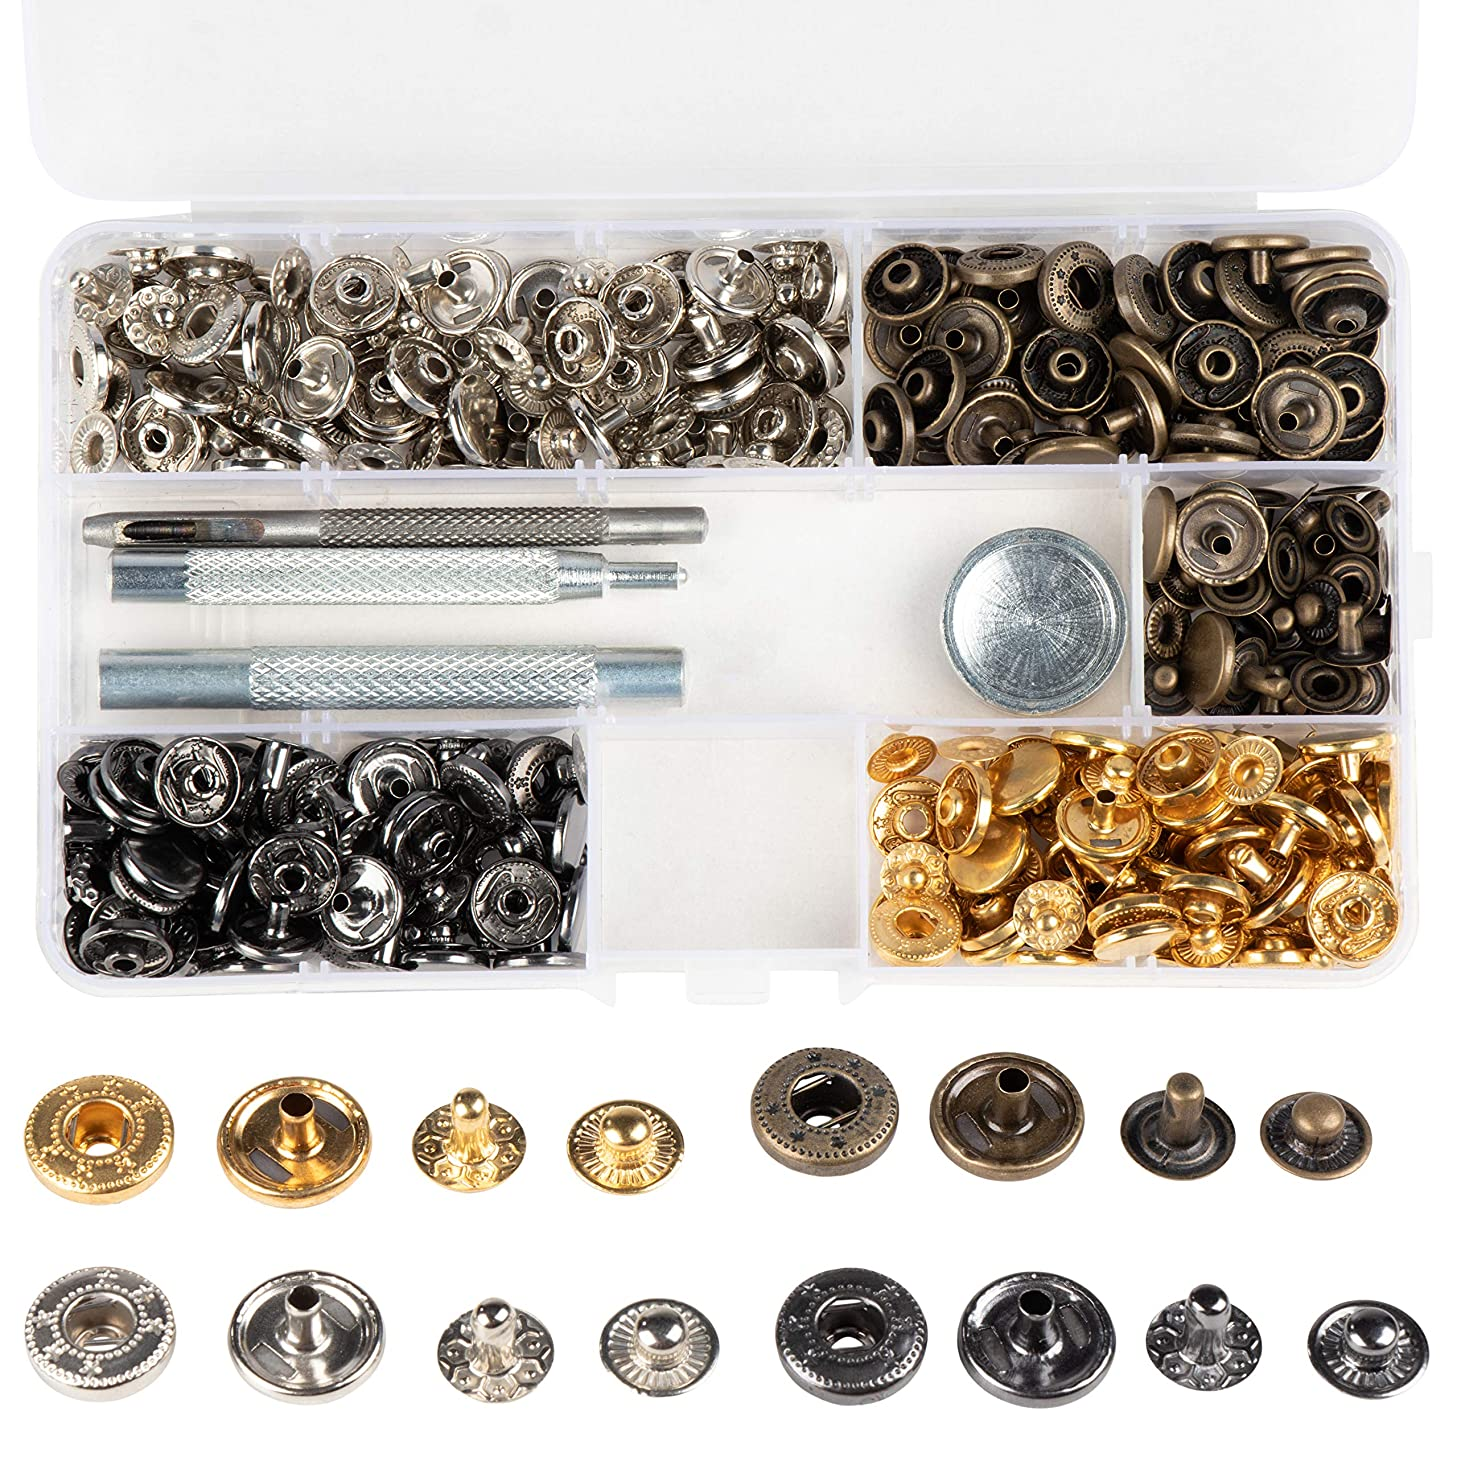 Snap Fastener Kit - 160-Piece Snap Buttons, with 4-Piece Tools, Clothing Snaps, Metal Snaps, Press Studs, for Leather, Craft, Repairing, Jeans, Coat, Bags, 4 Colors, 9 mm - 12 mm Diameter